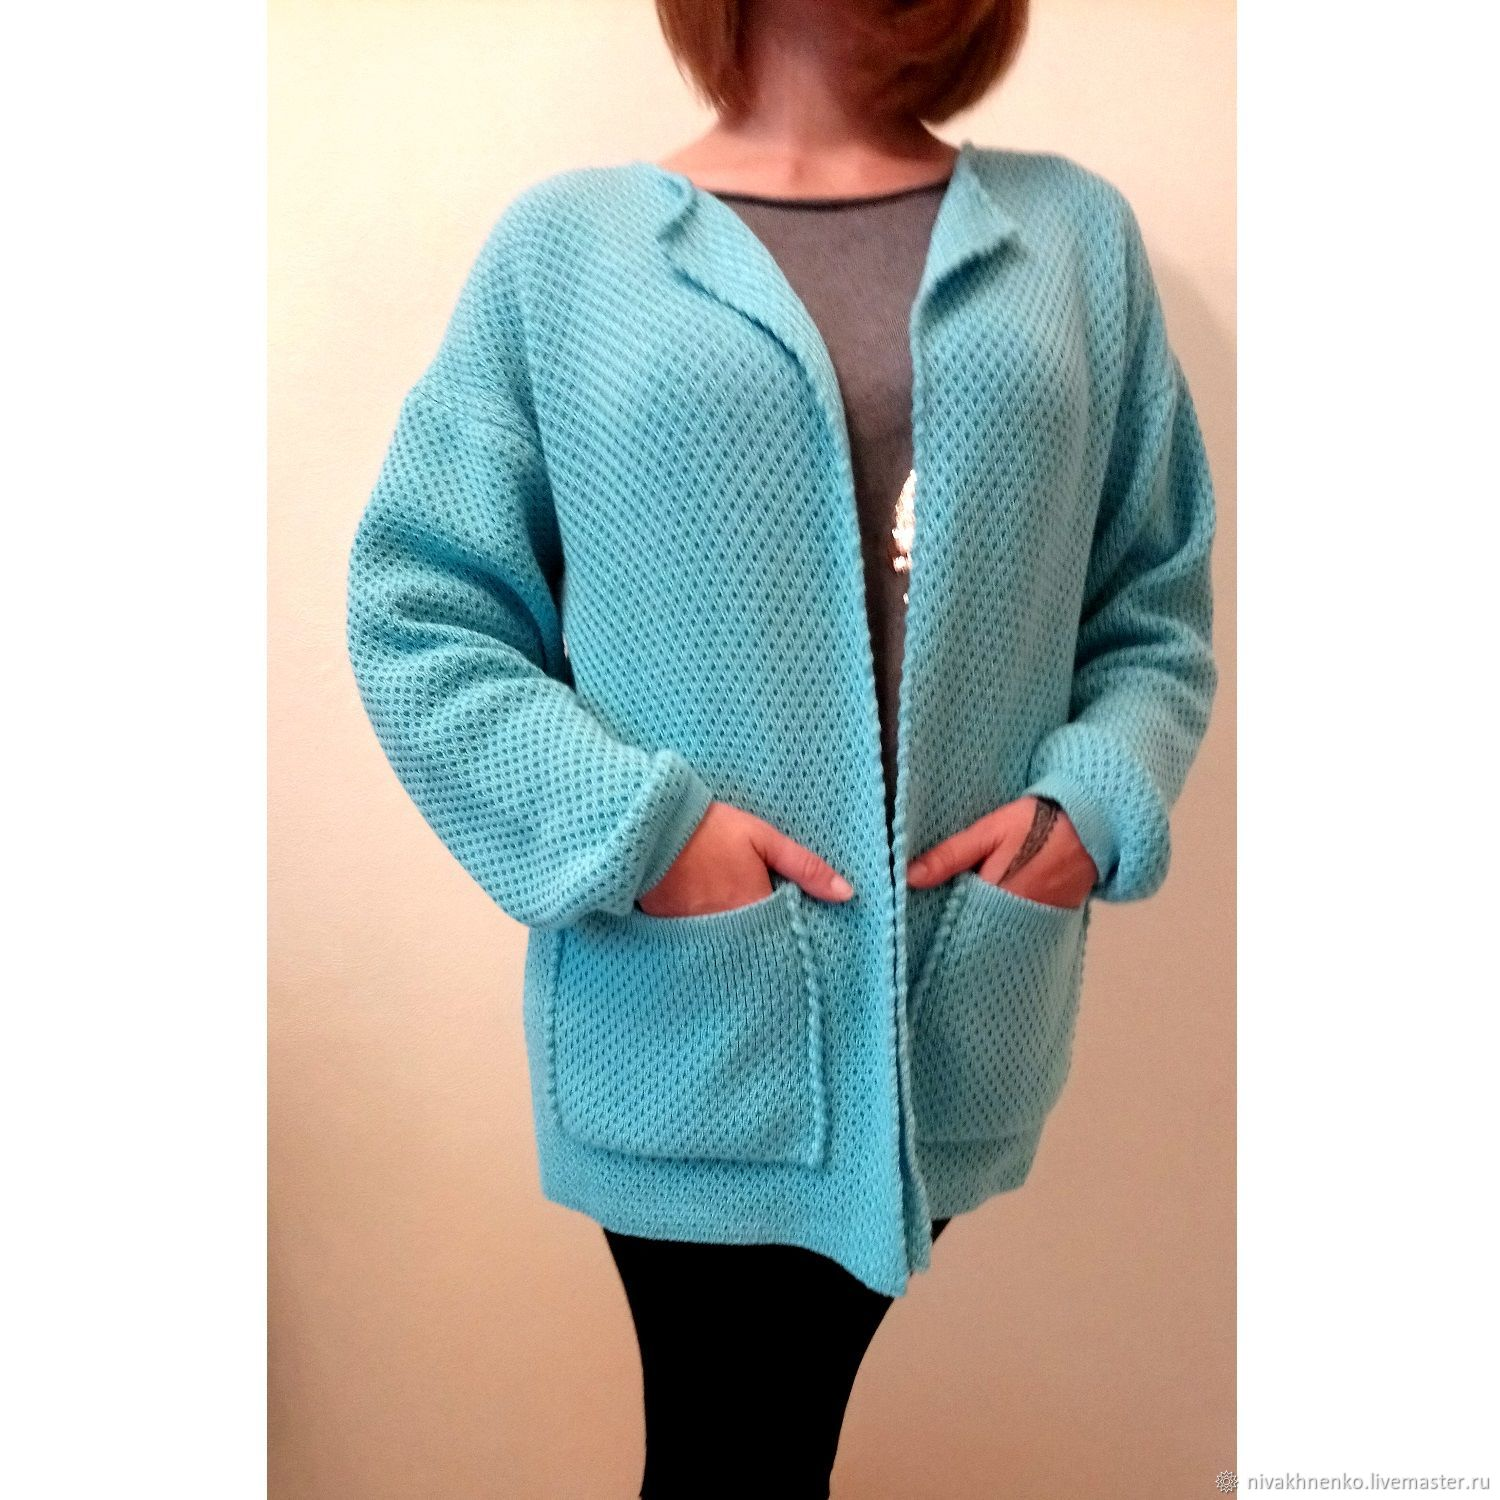 Cardigan no closure patch pockets wool blend, Cardigans, Moscow,  Фото №1